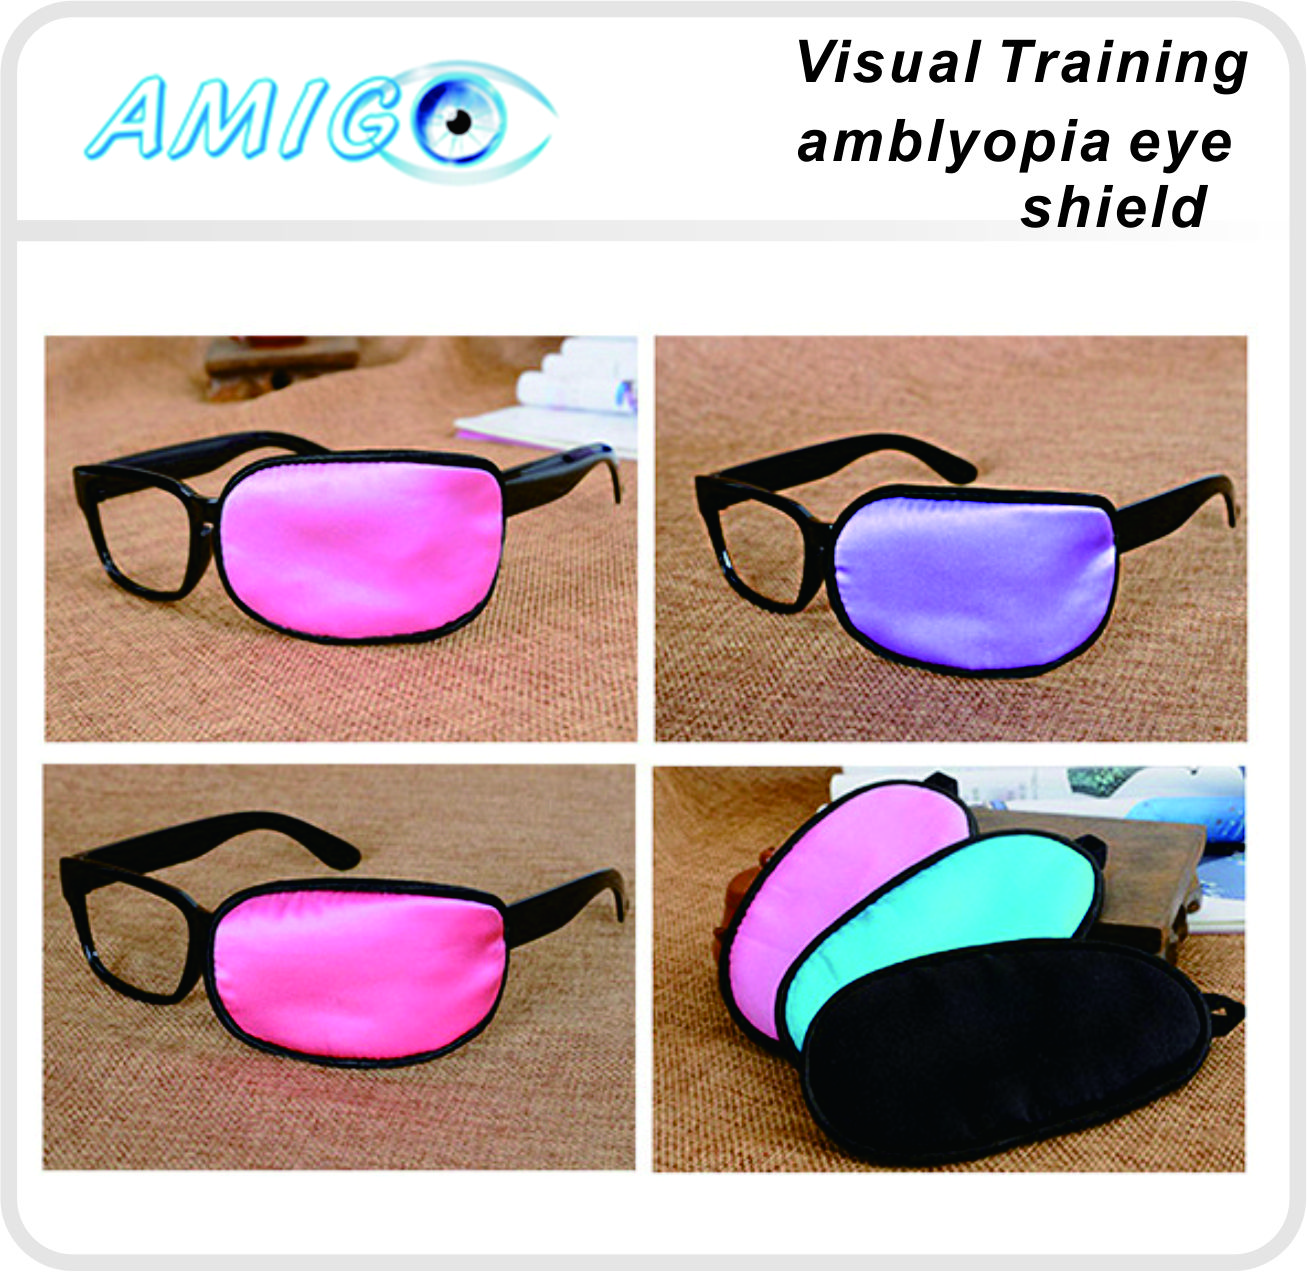 amblyopia eye shield